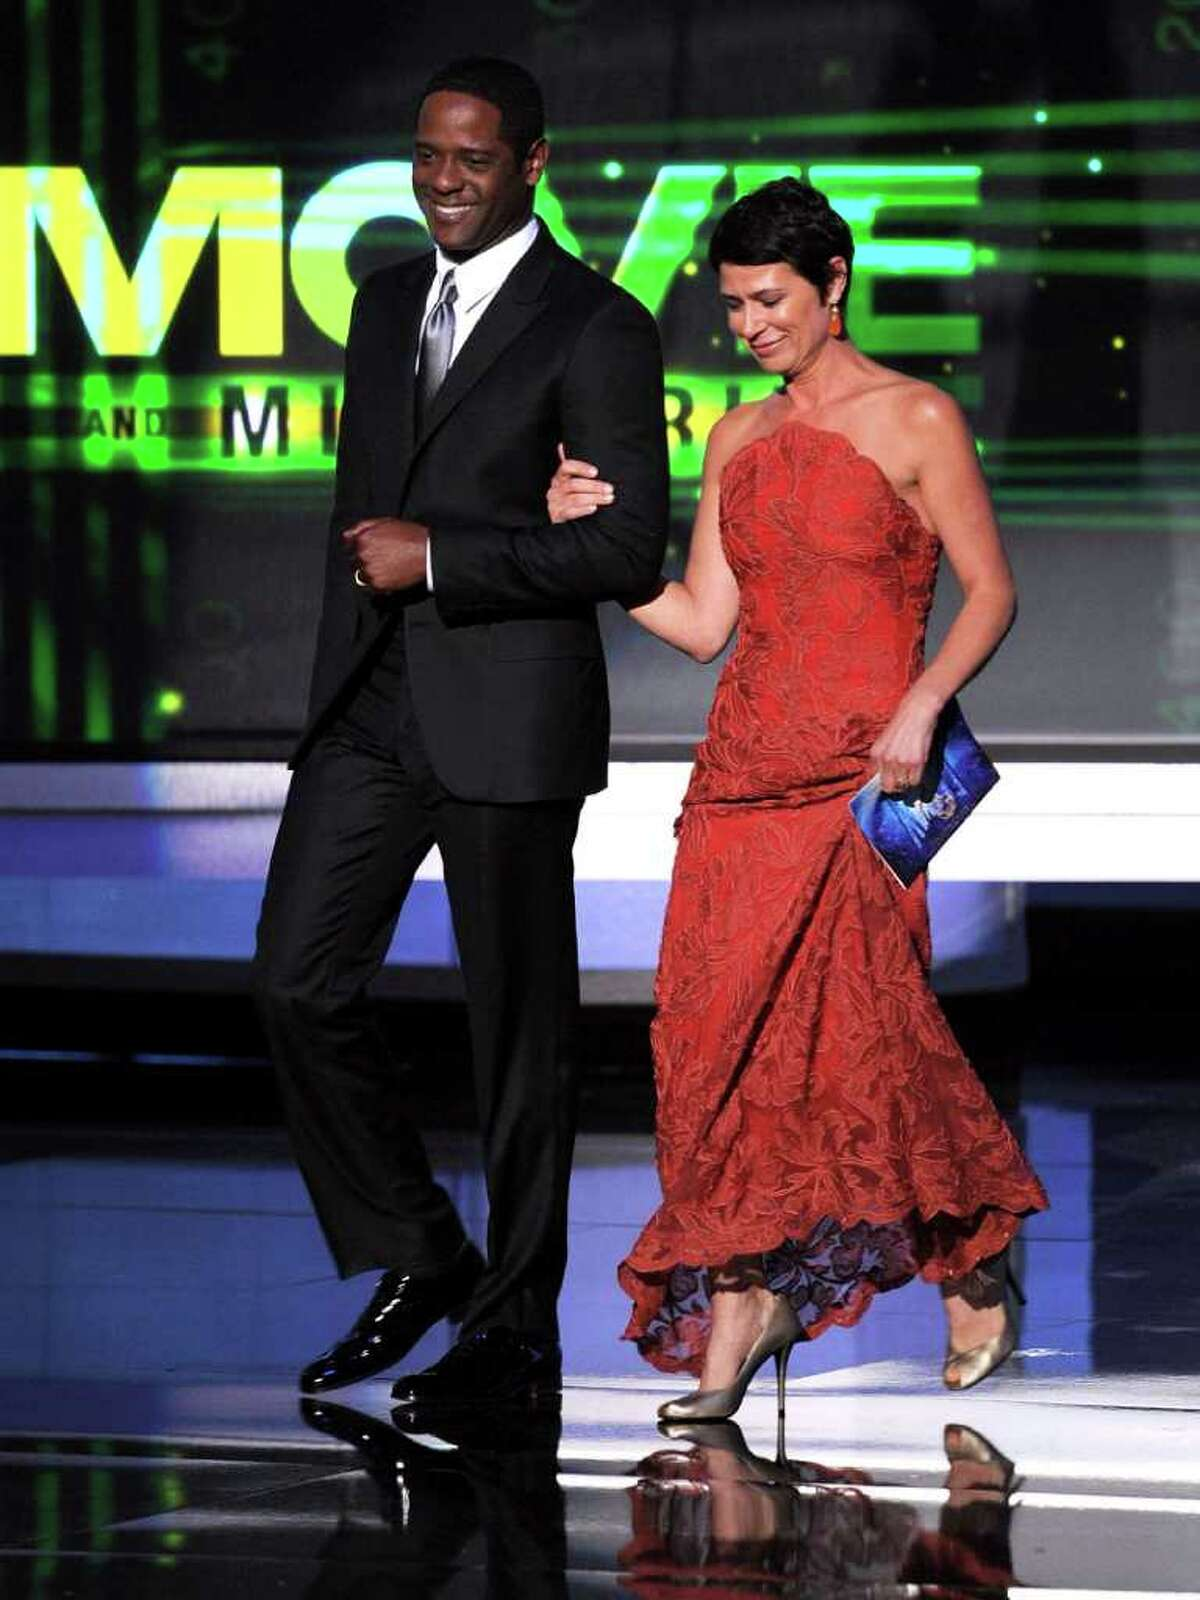 LOS ANGELES, CA - AUGUST 29: Actors Blair Underwood (L) and Maura Tierney speak onstage at the 62nd Annual Primetime Emmy Awards held at the Nokia Theatre L.A. Live on August 29, 2010 in Los Angeles, California. (Photo by Kevin Winter/Getty Images) *** Local Caption *** Blair Underwood;Maura Tierney